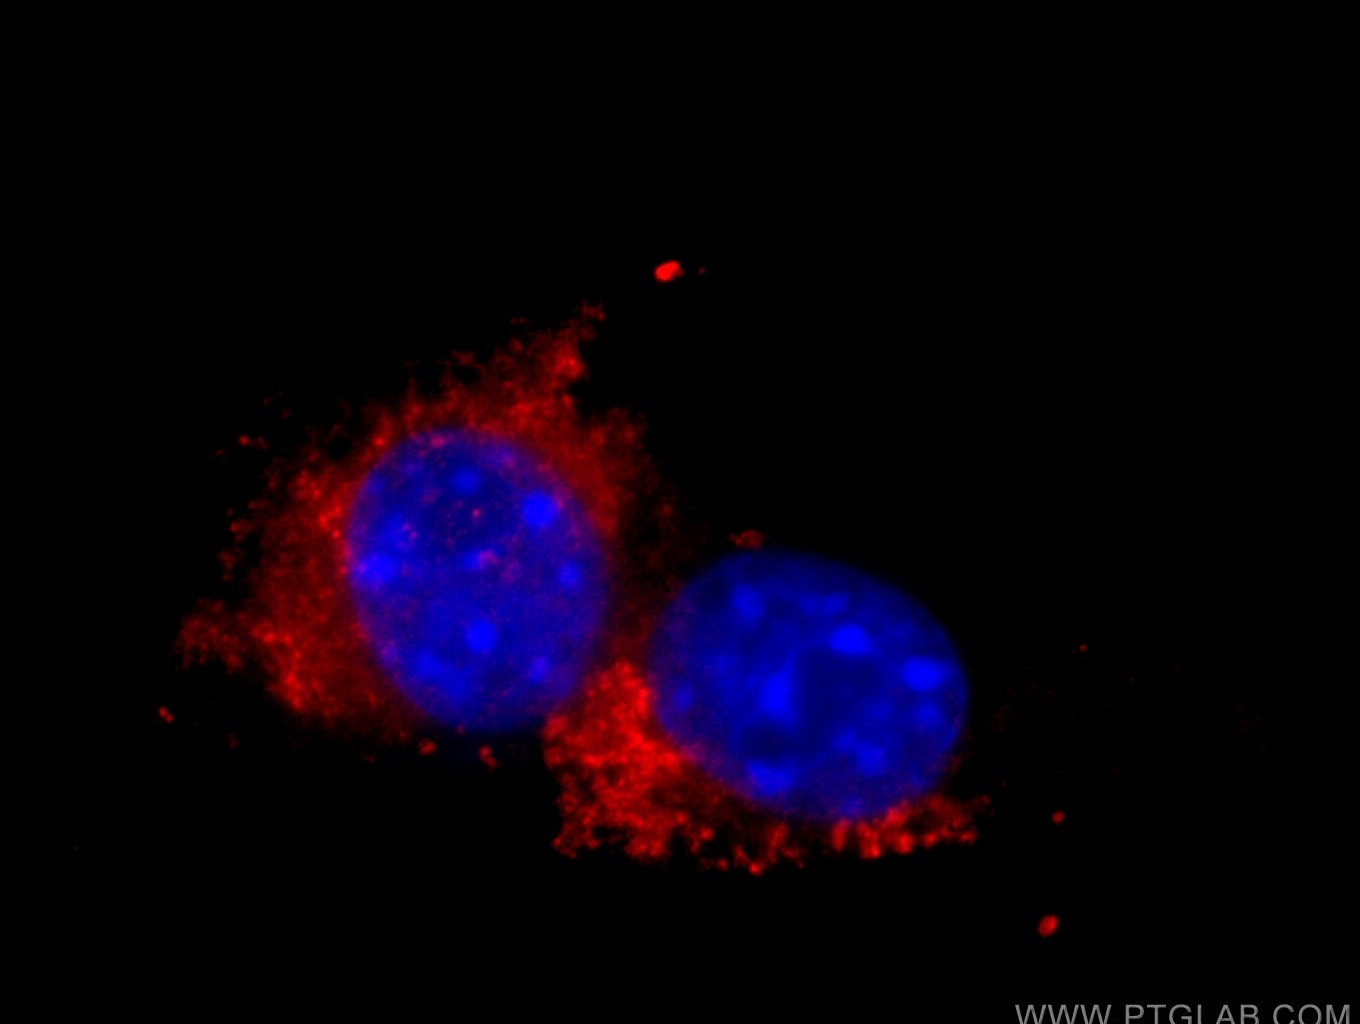 IF Staining of NIH/3T3 using 65050-1-Ig